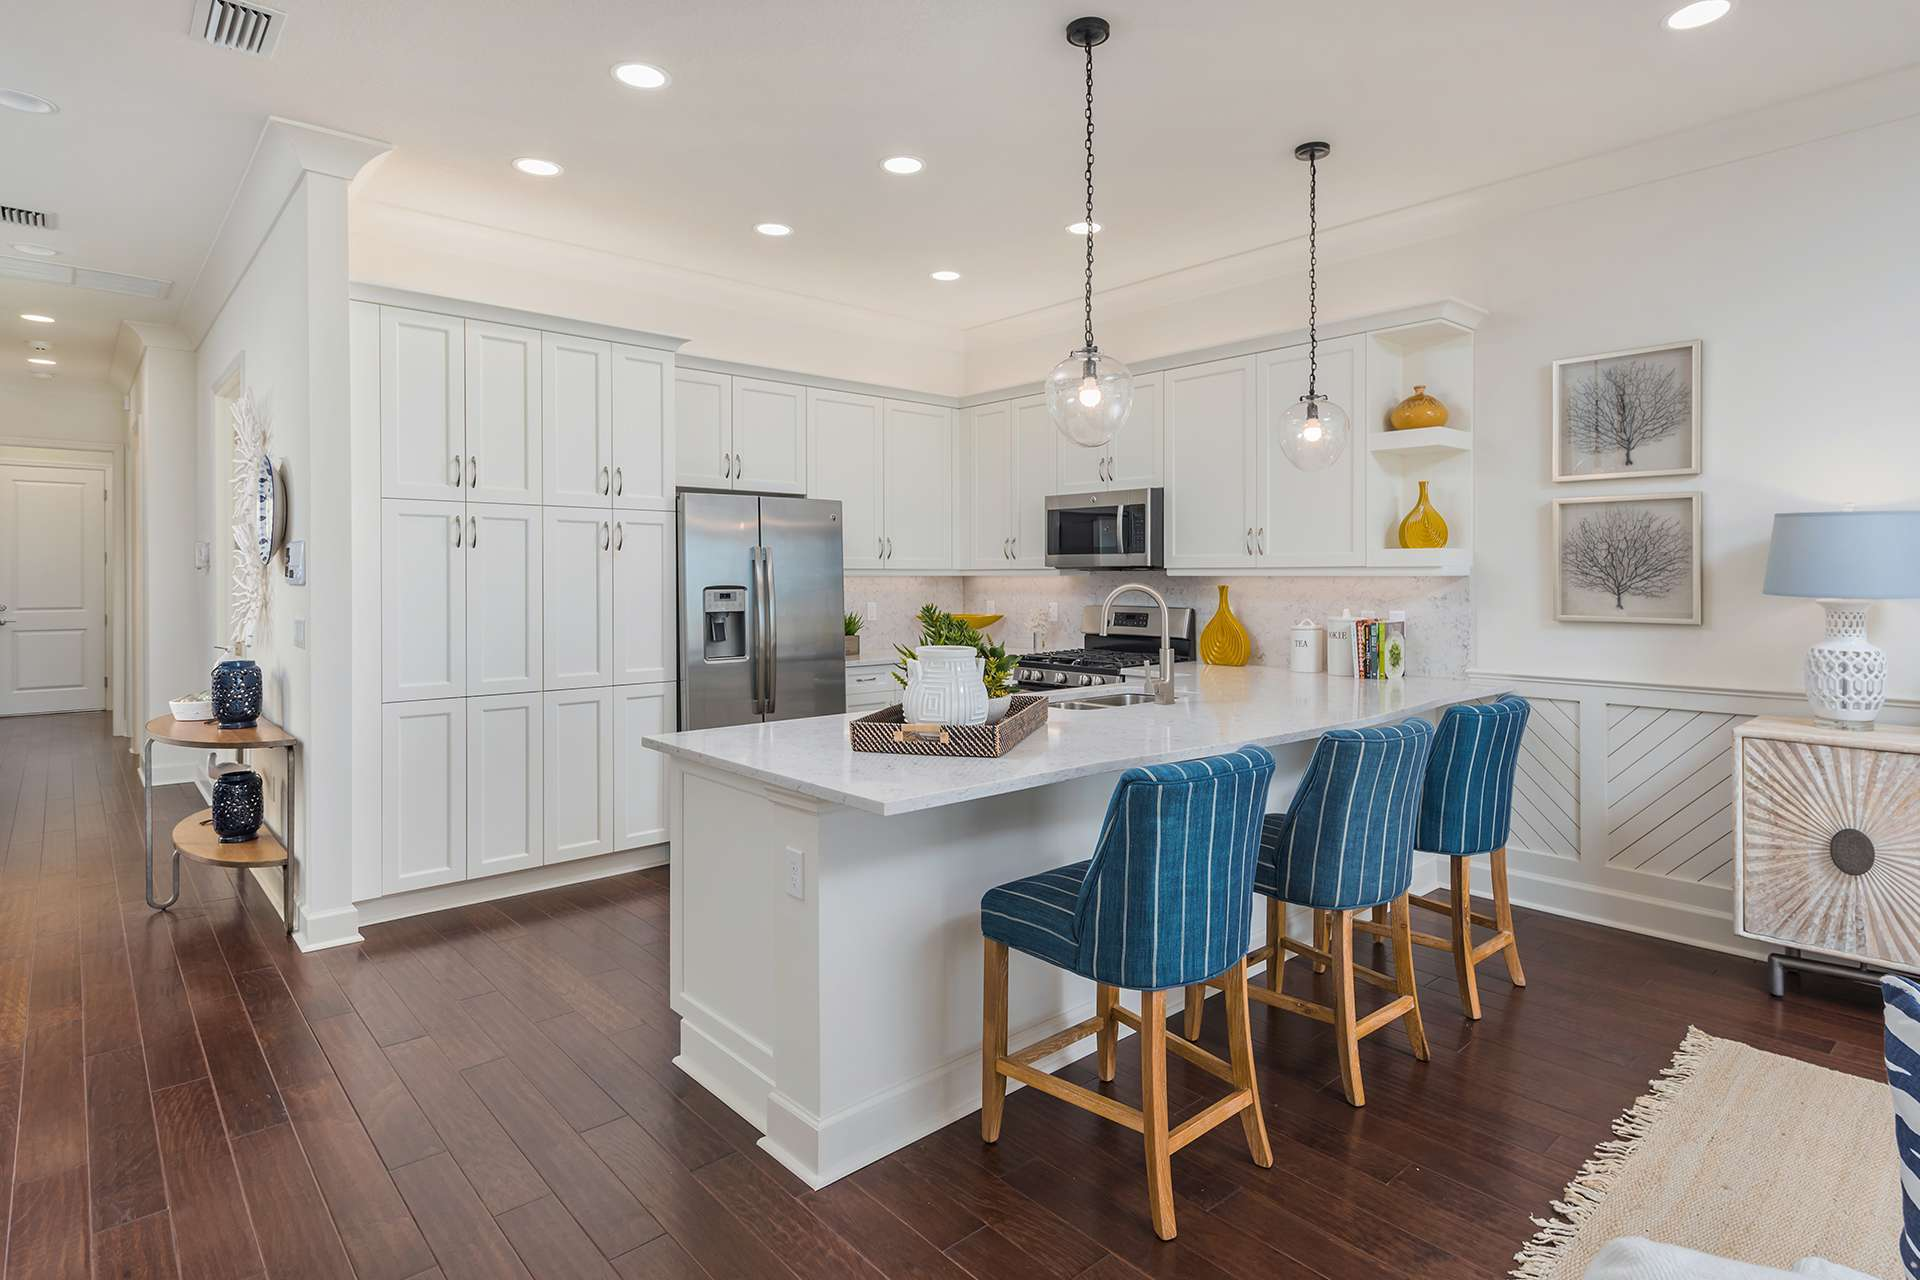 Kitchen featured in the Nantucket By GL Homes in Fort Myers, FL